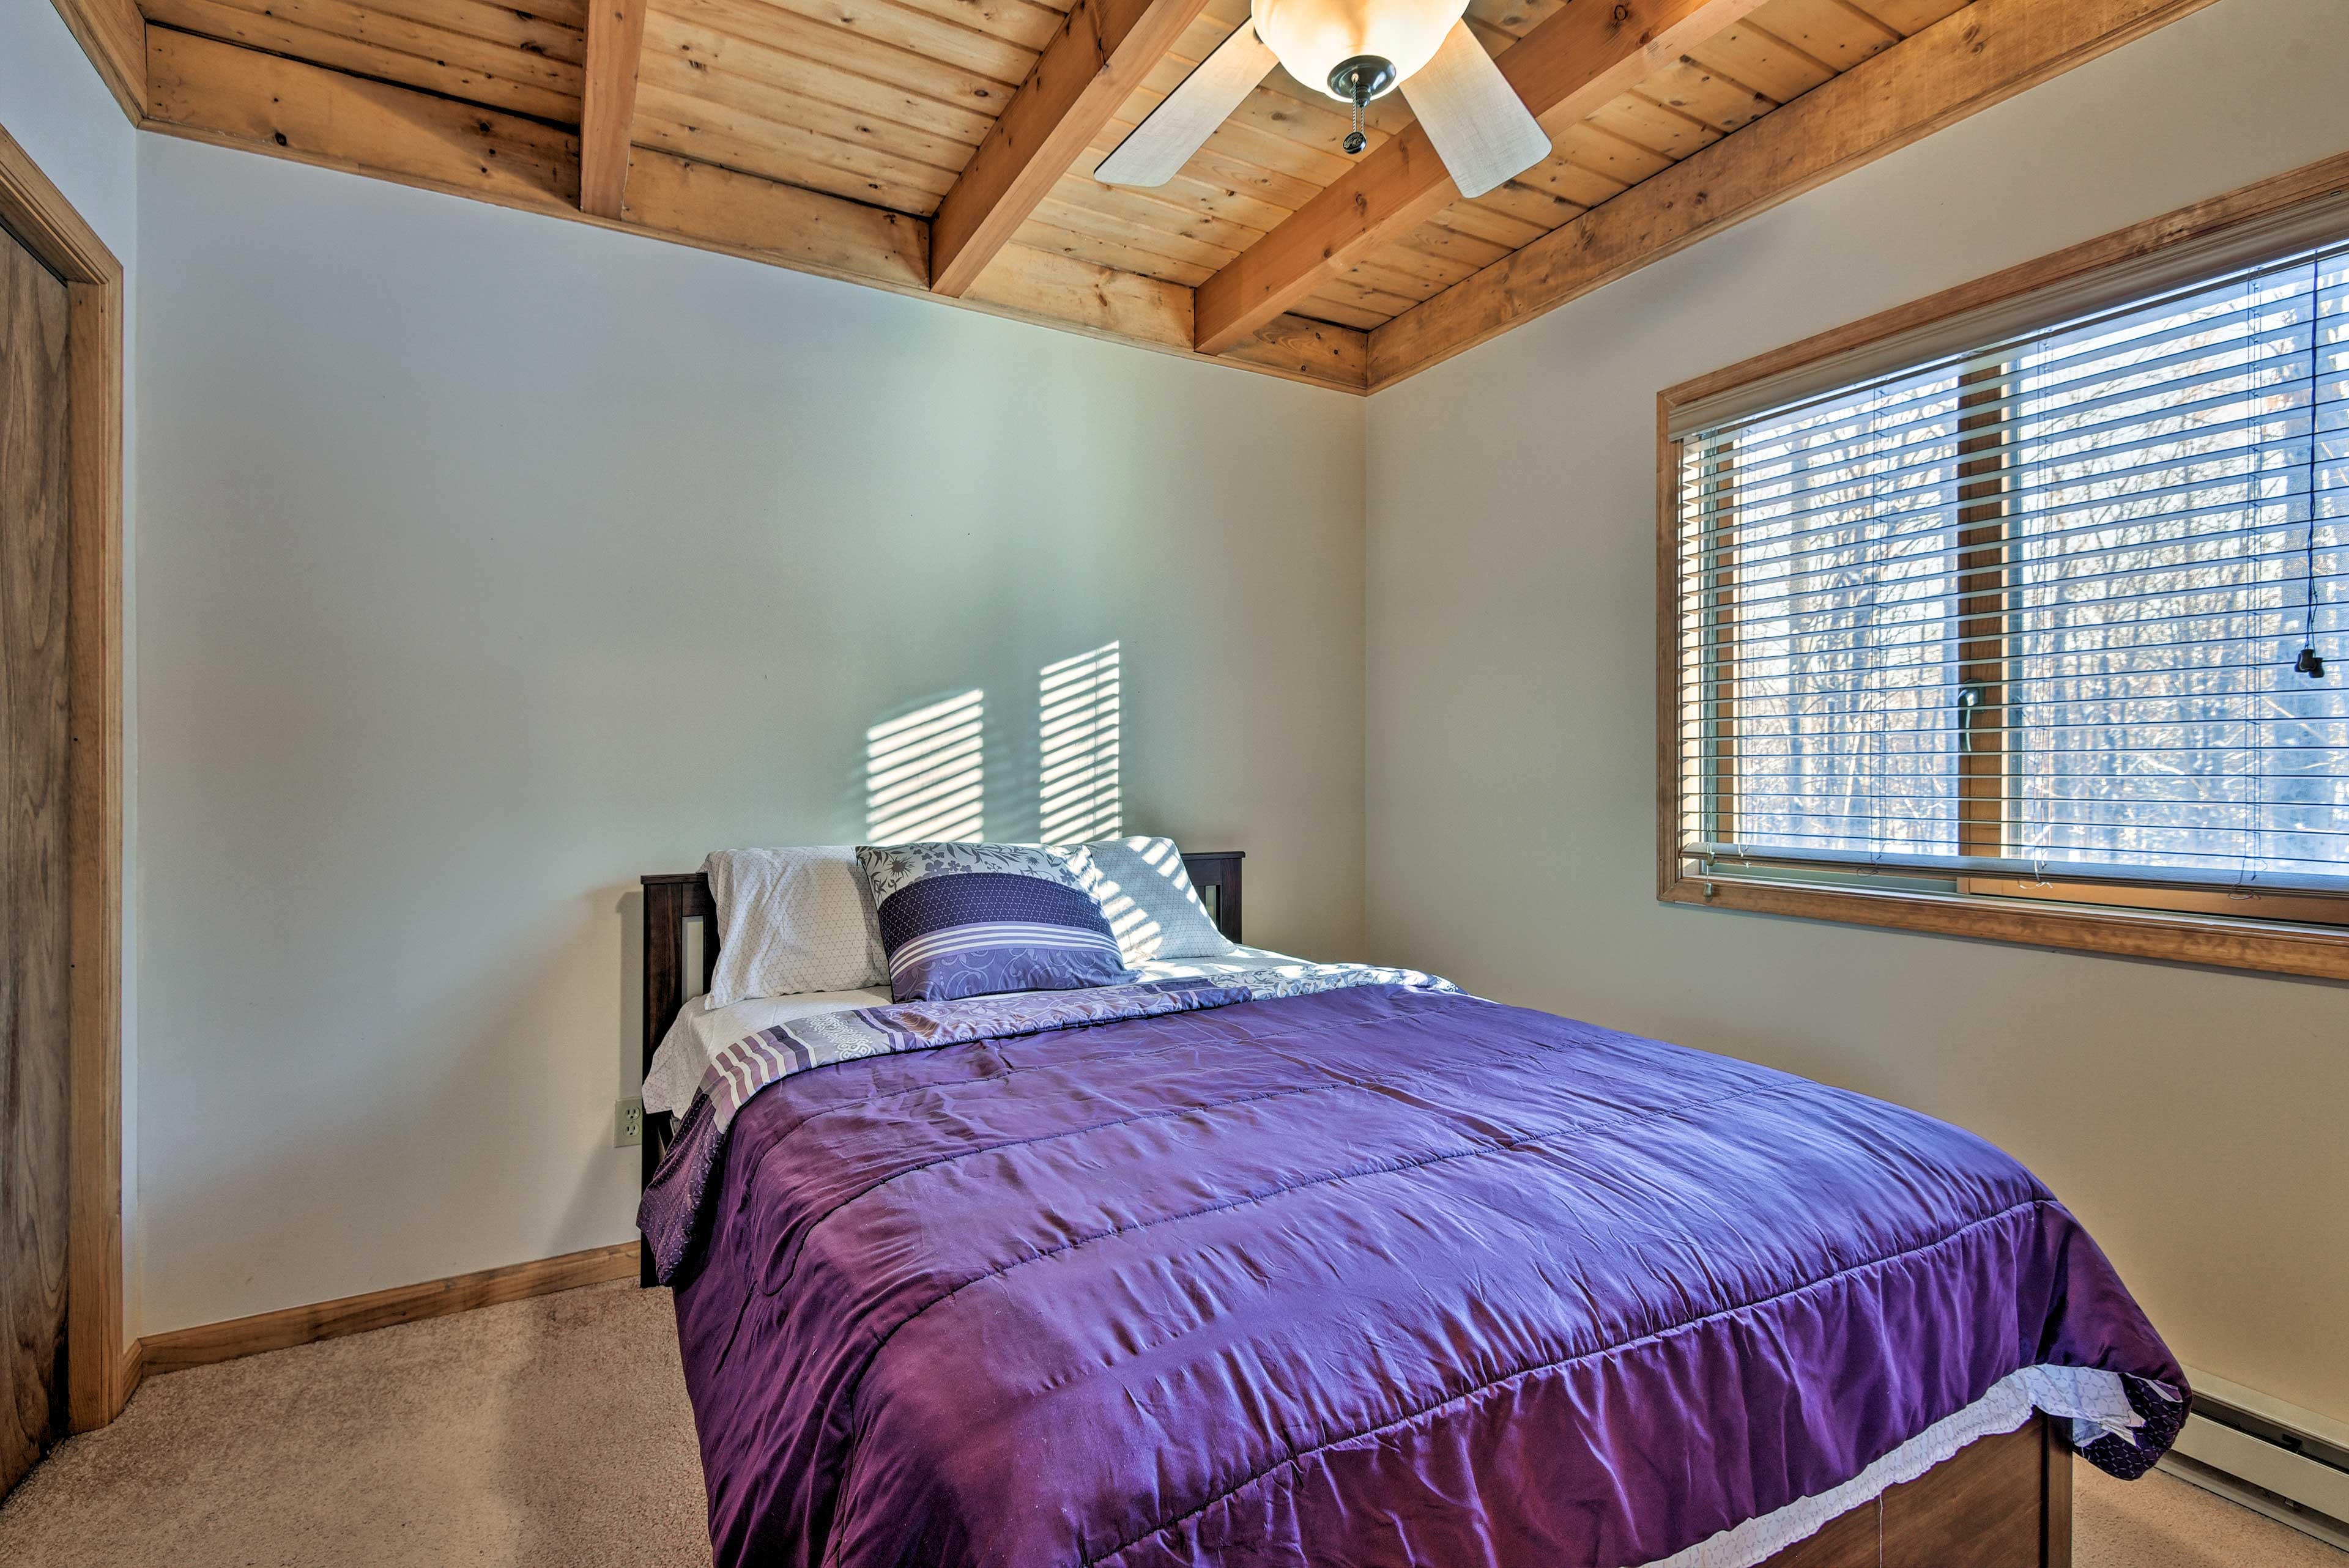 This third bedroom hosts a queen bed and rustic wood ceilings.